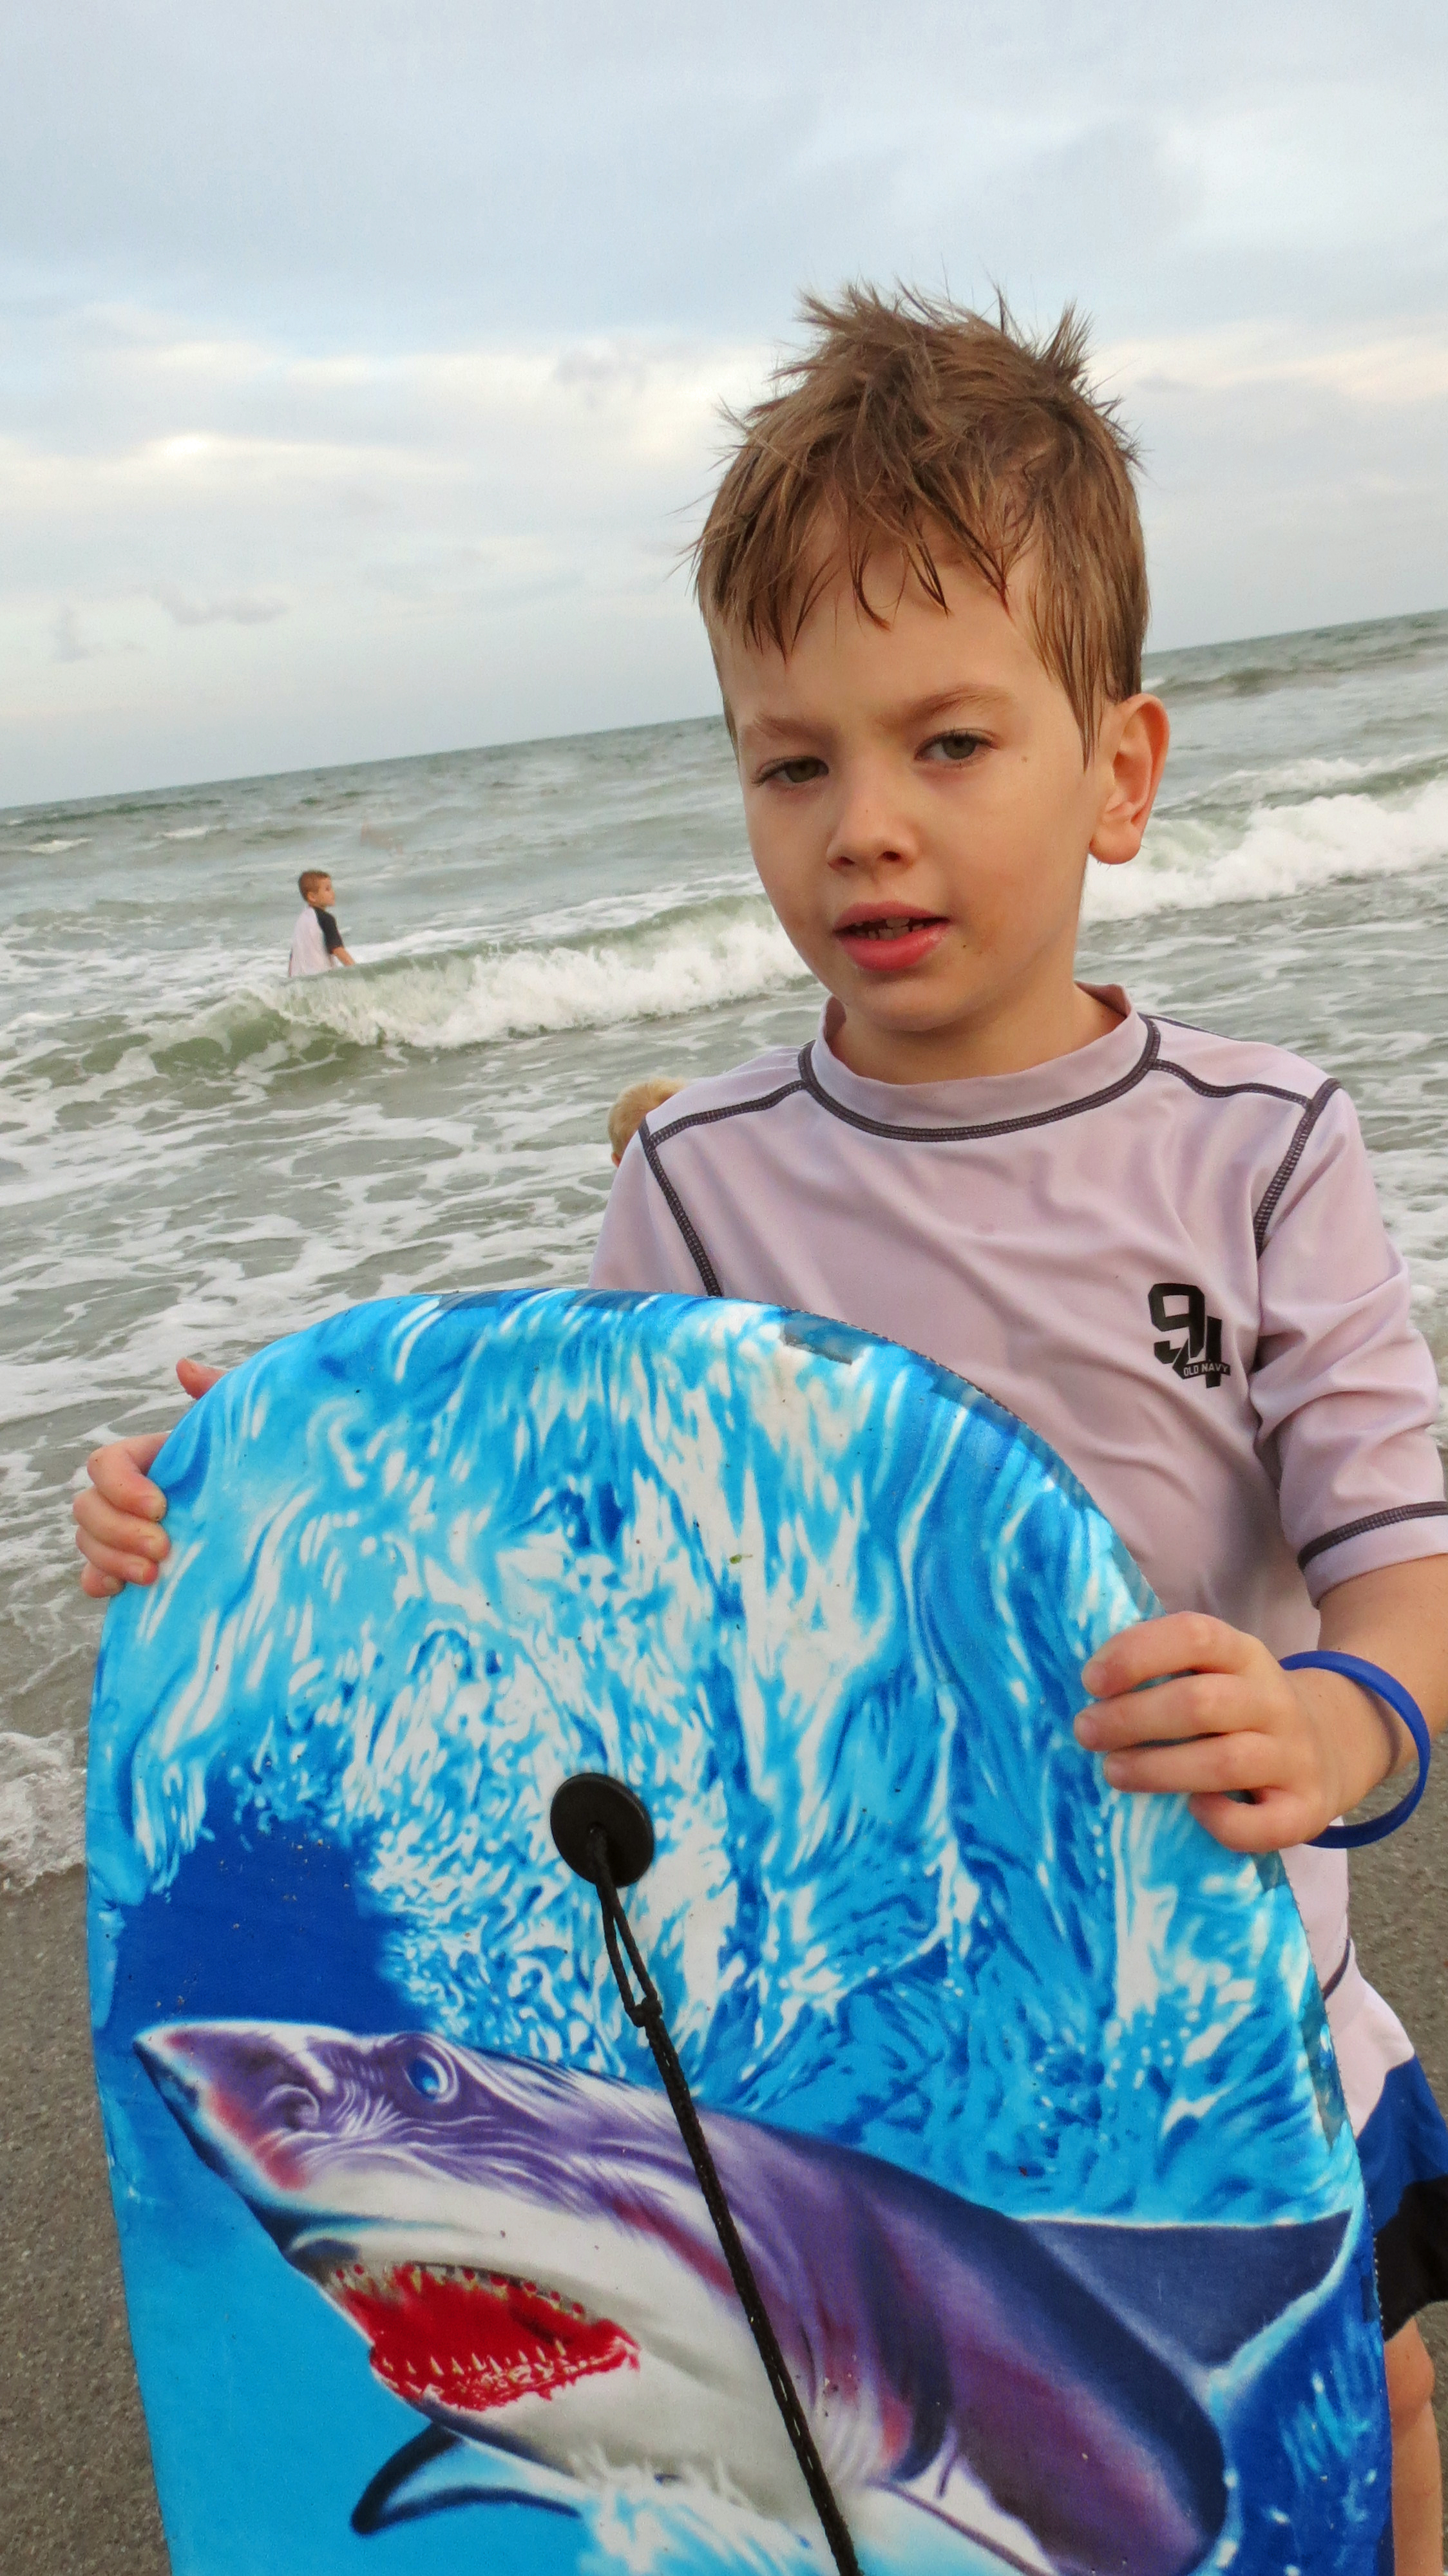 Enjoying a little boogie boarding